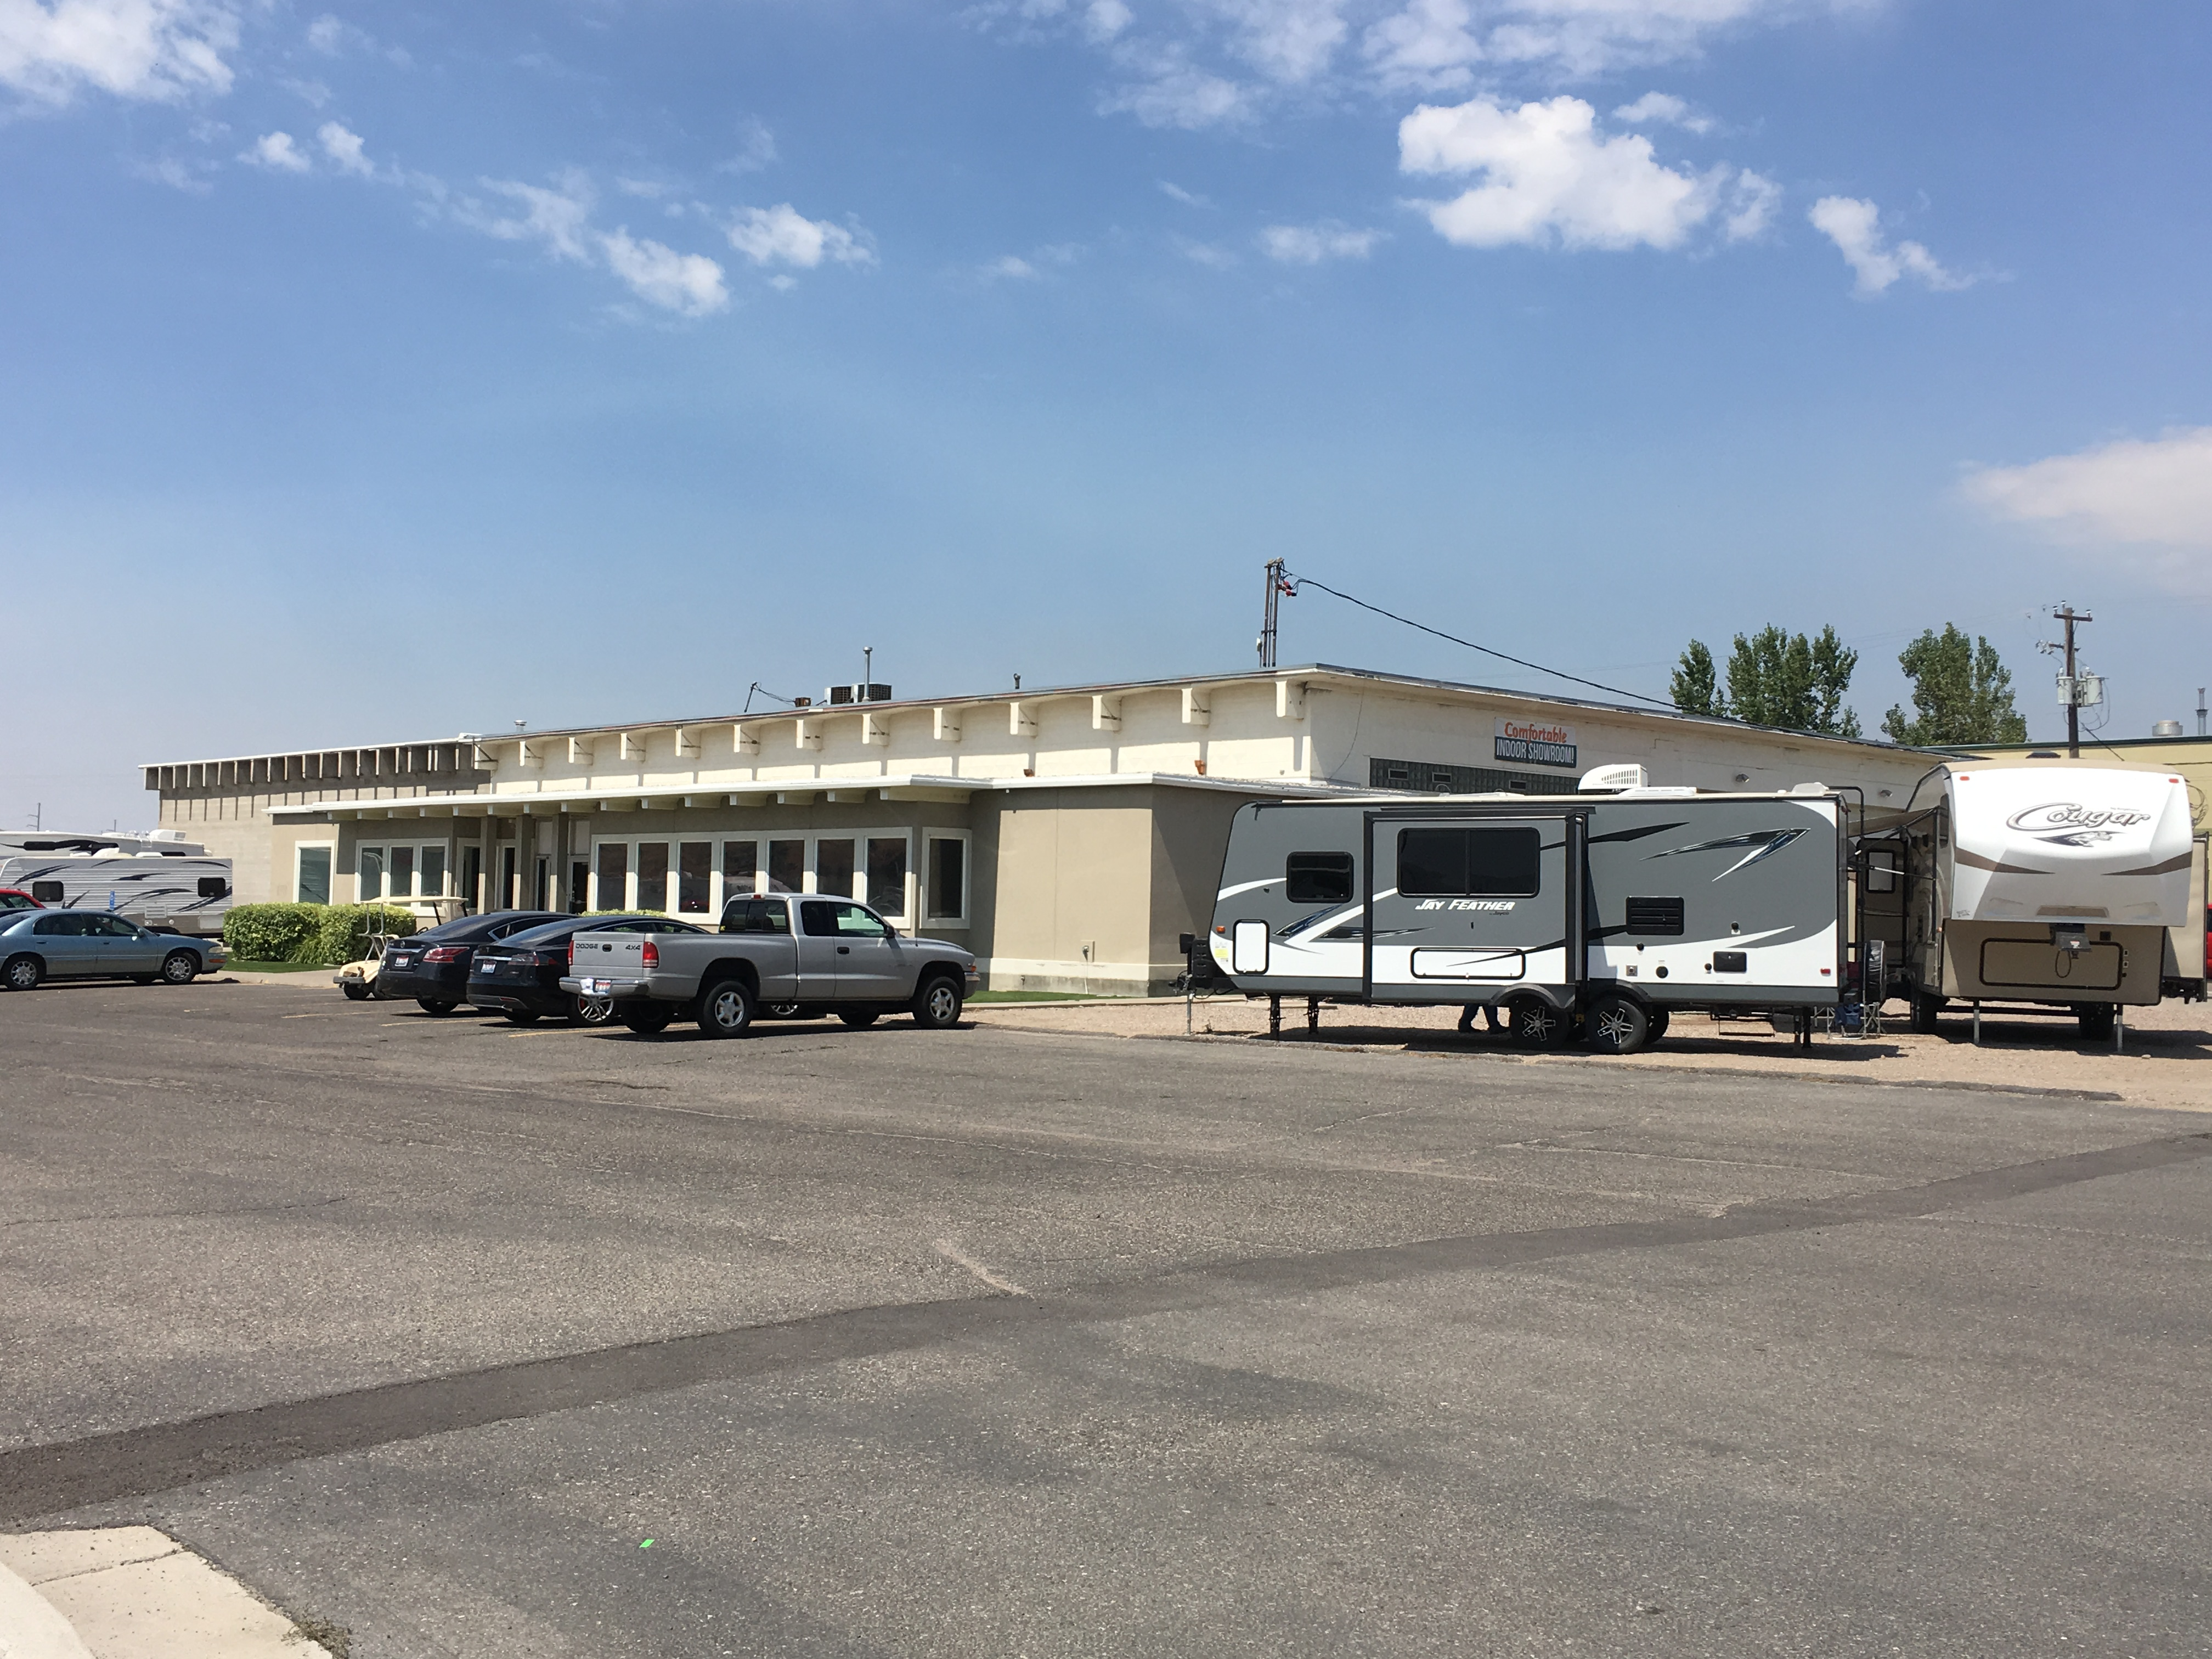 Bish S Rv Of Pocatello Pocatello Idaho Id